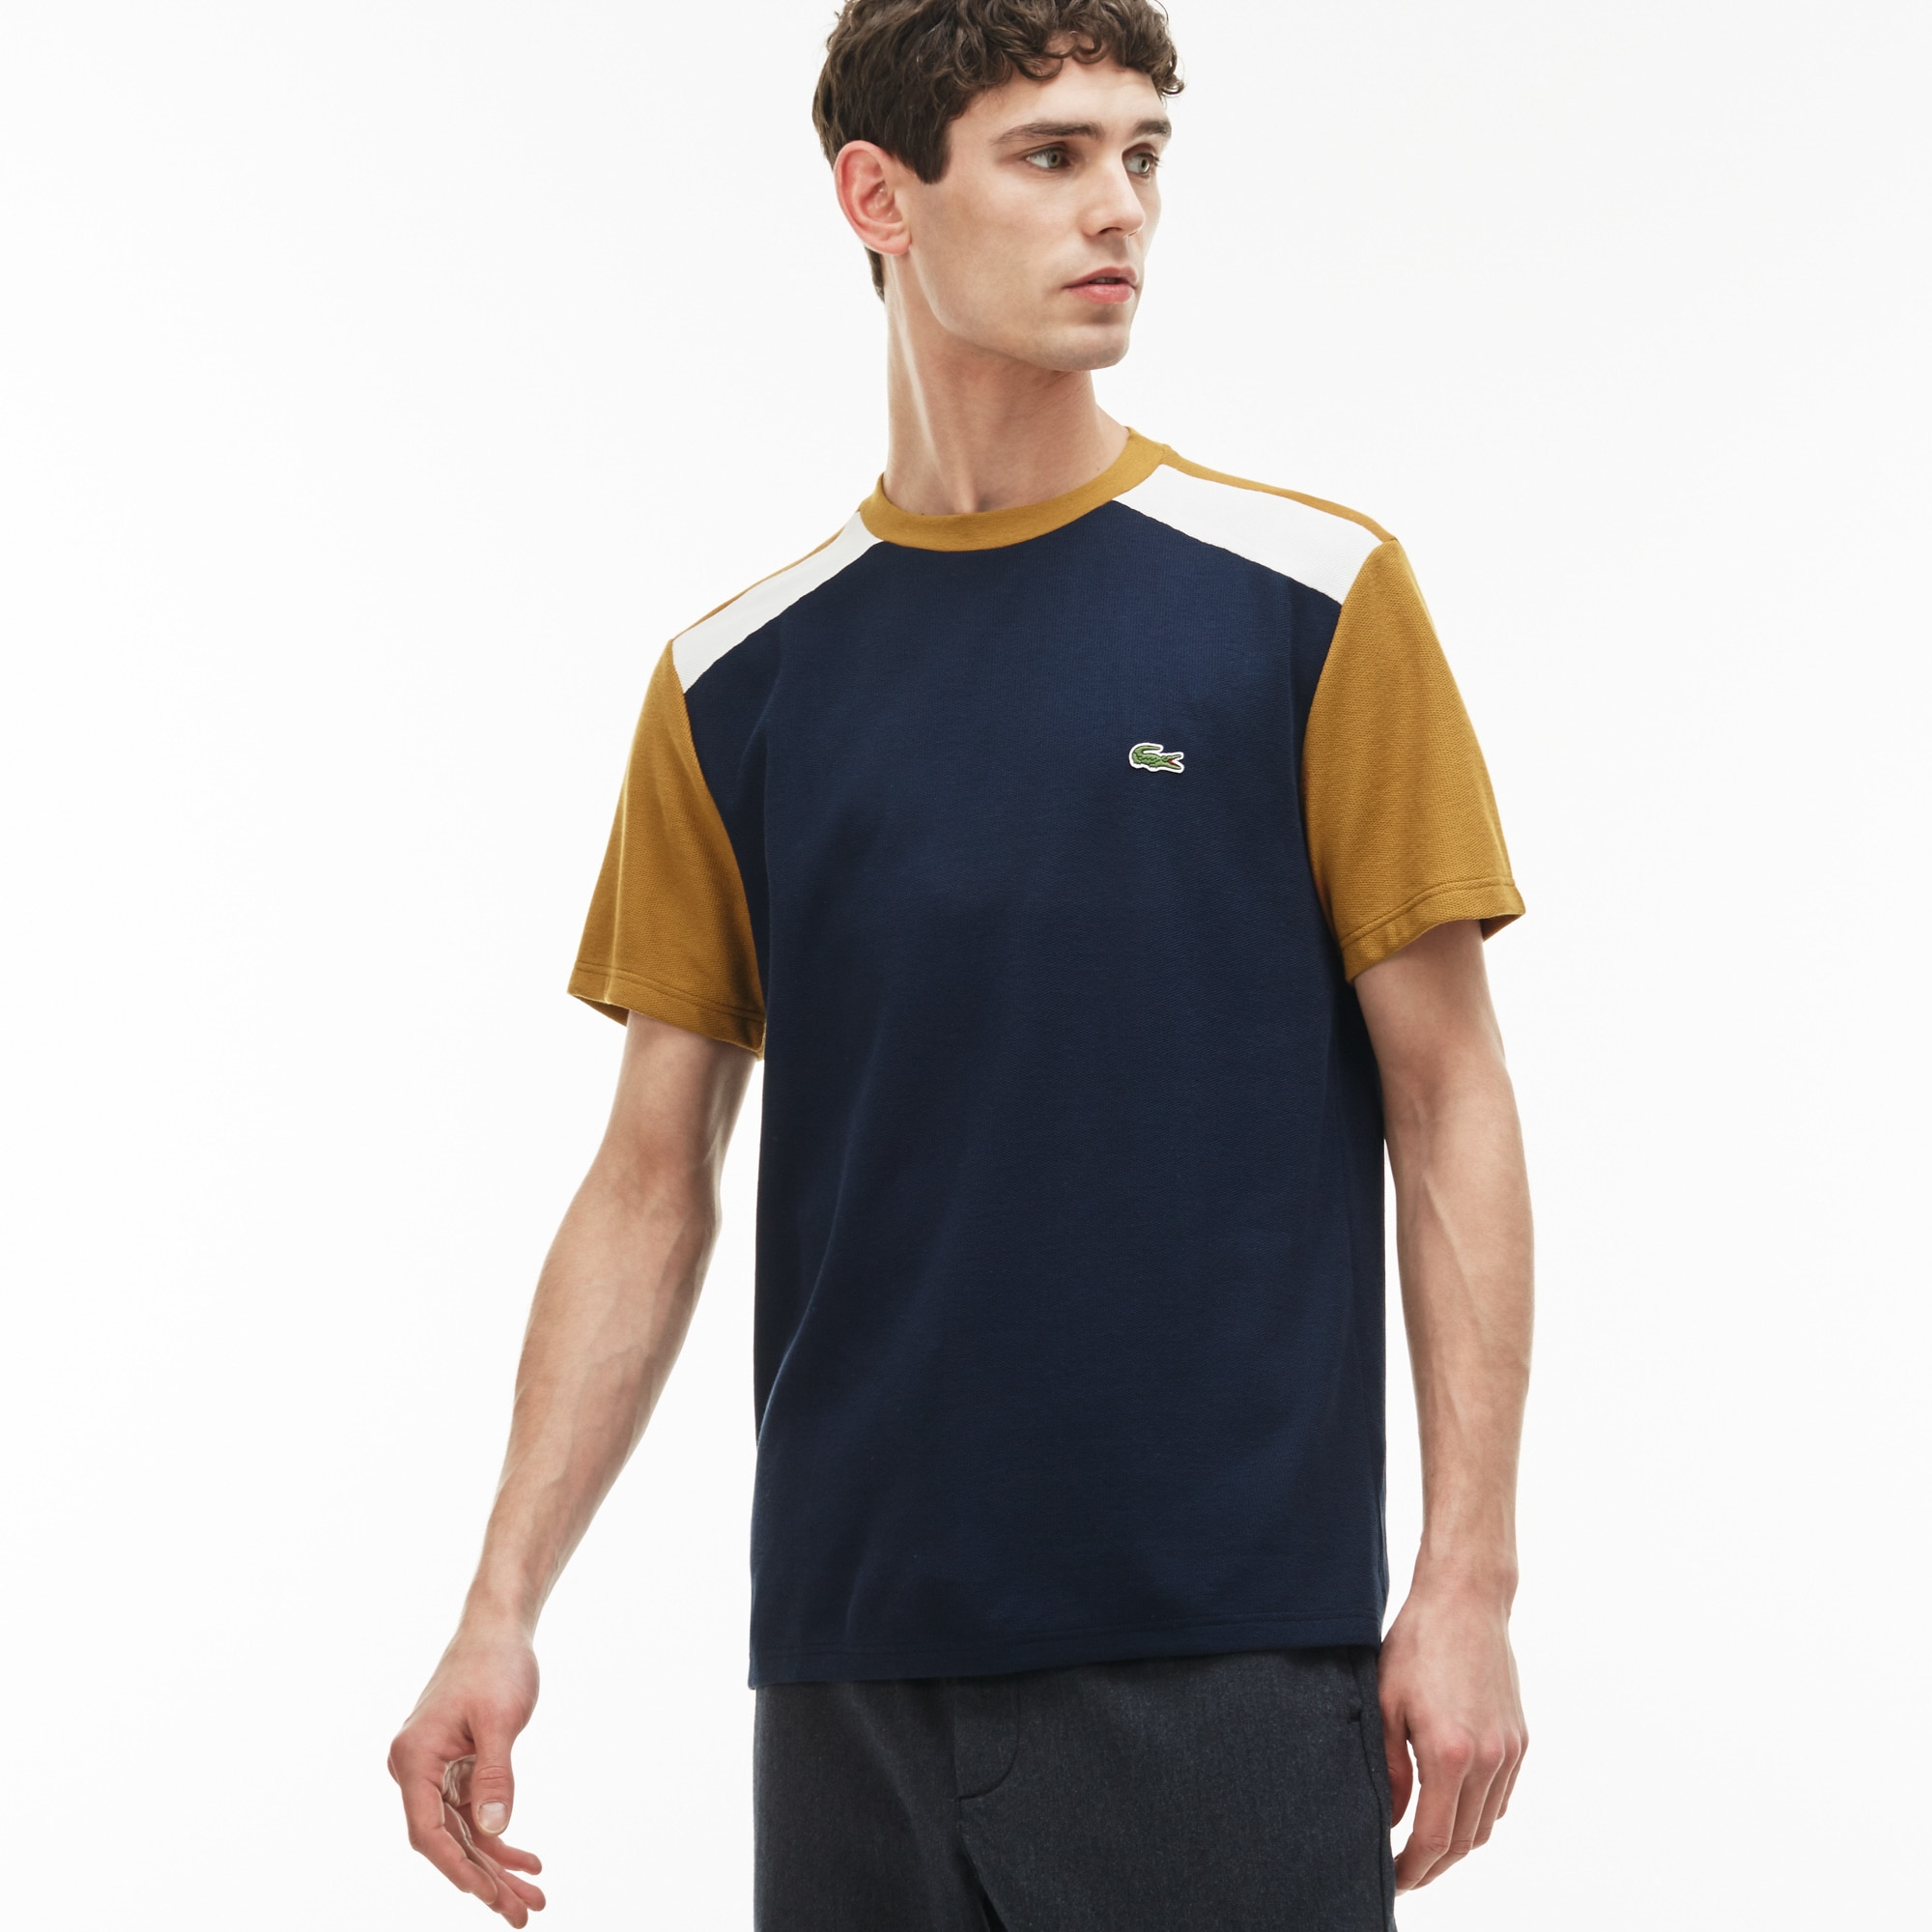 Men's Crew Neck Colorblock Jersey And Piqué T-shirt